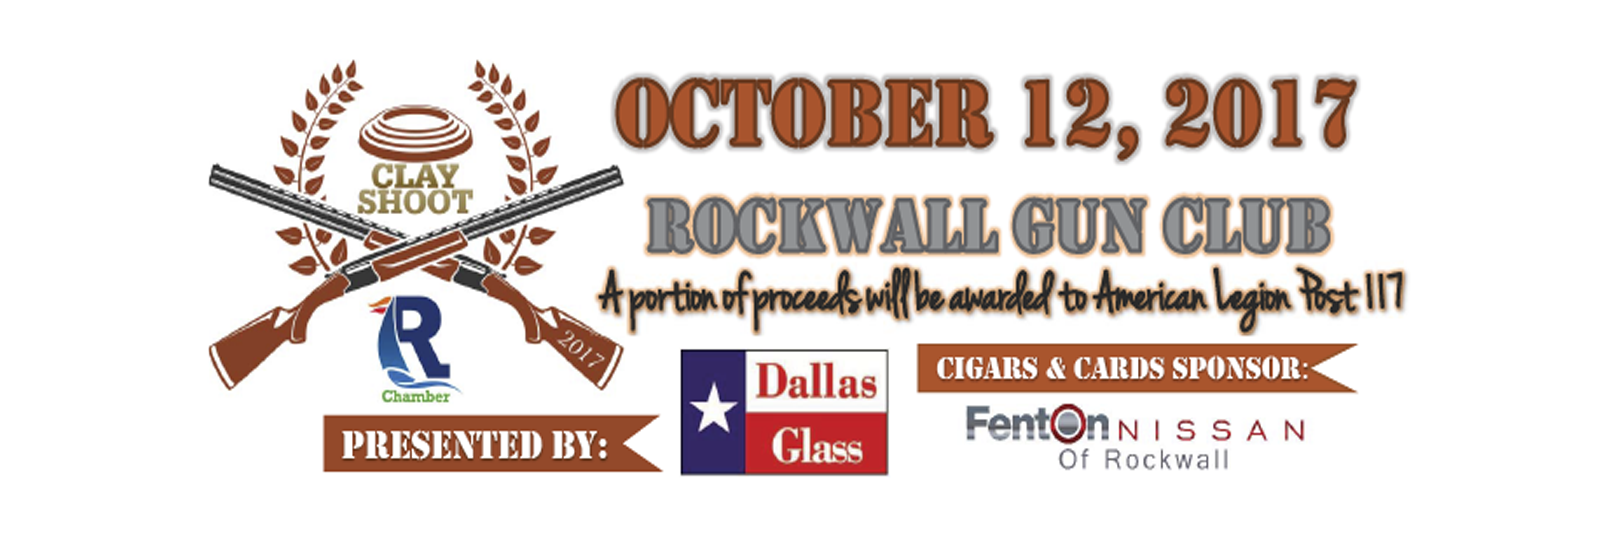 clay-shoot-Date-location-presenting-sponsors2.png